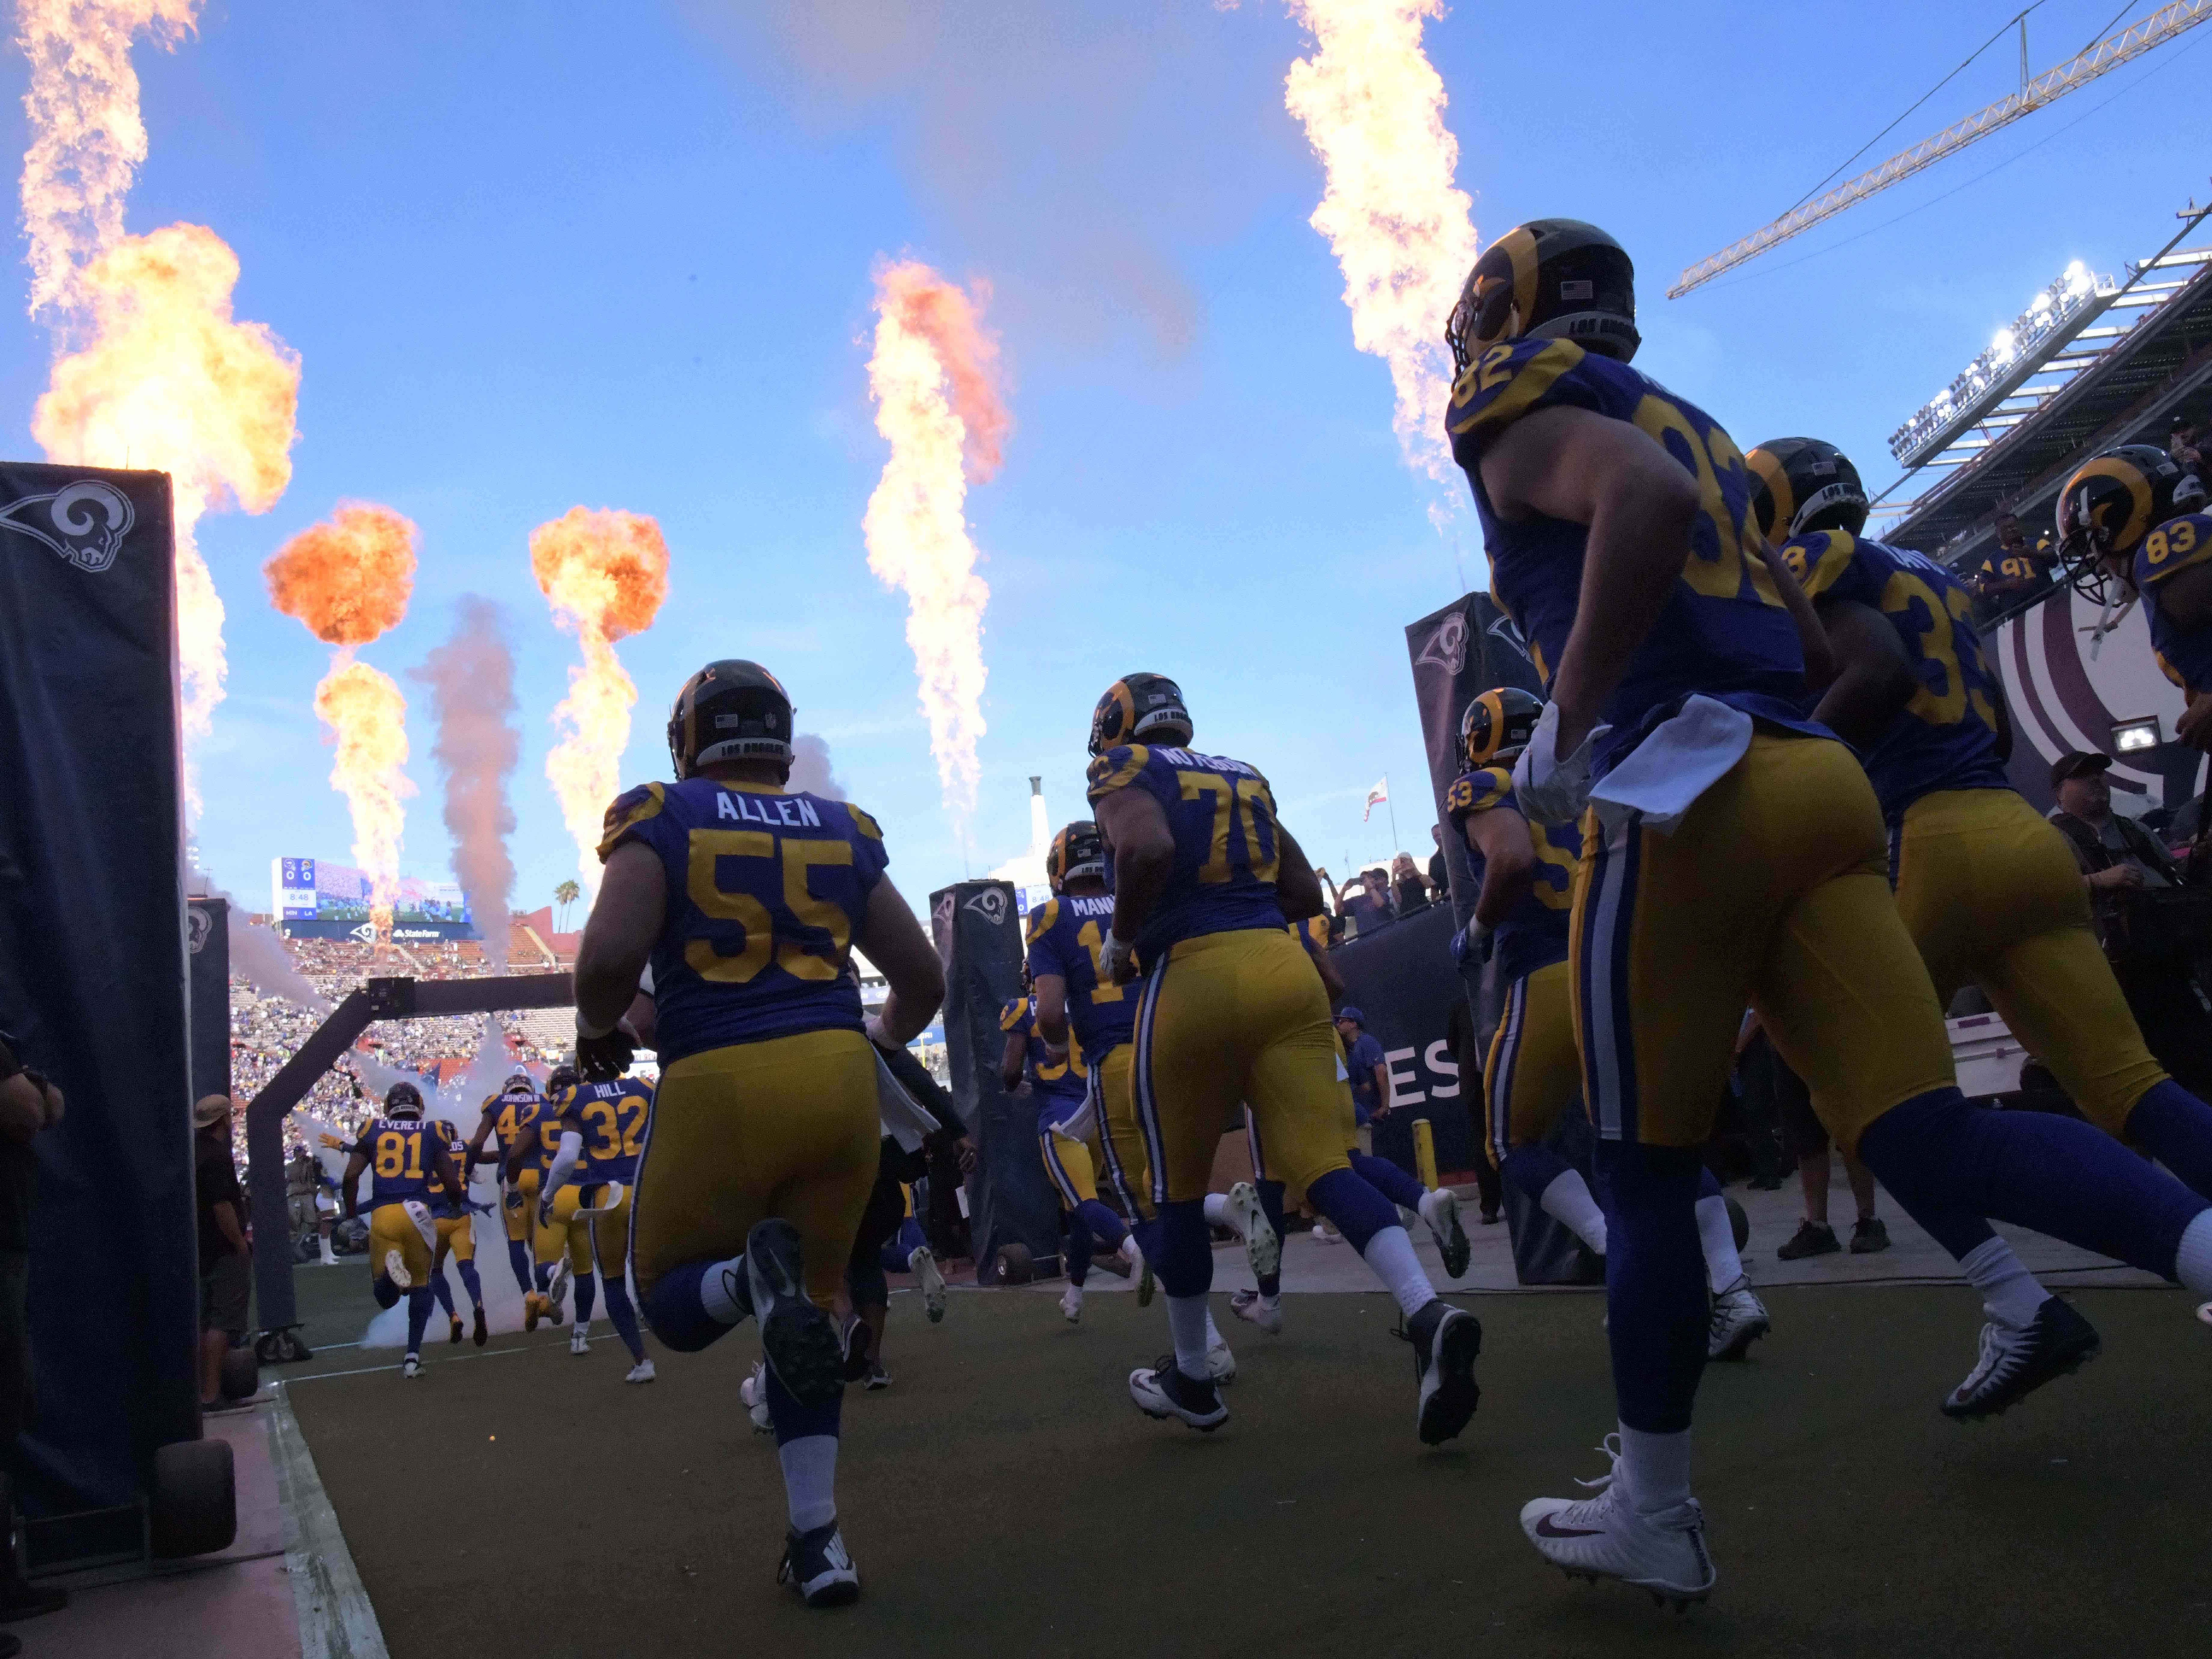 Los Angeles Rams players enter the field thorough flames before the game against the Minnesota Vikings at Los Angeles Memorial Coliseum.